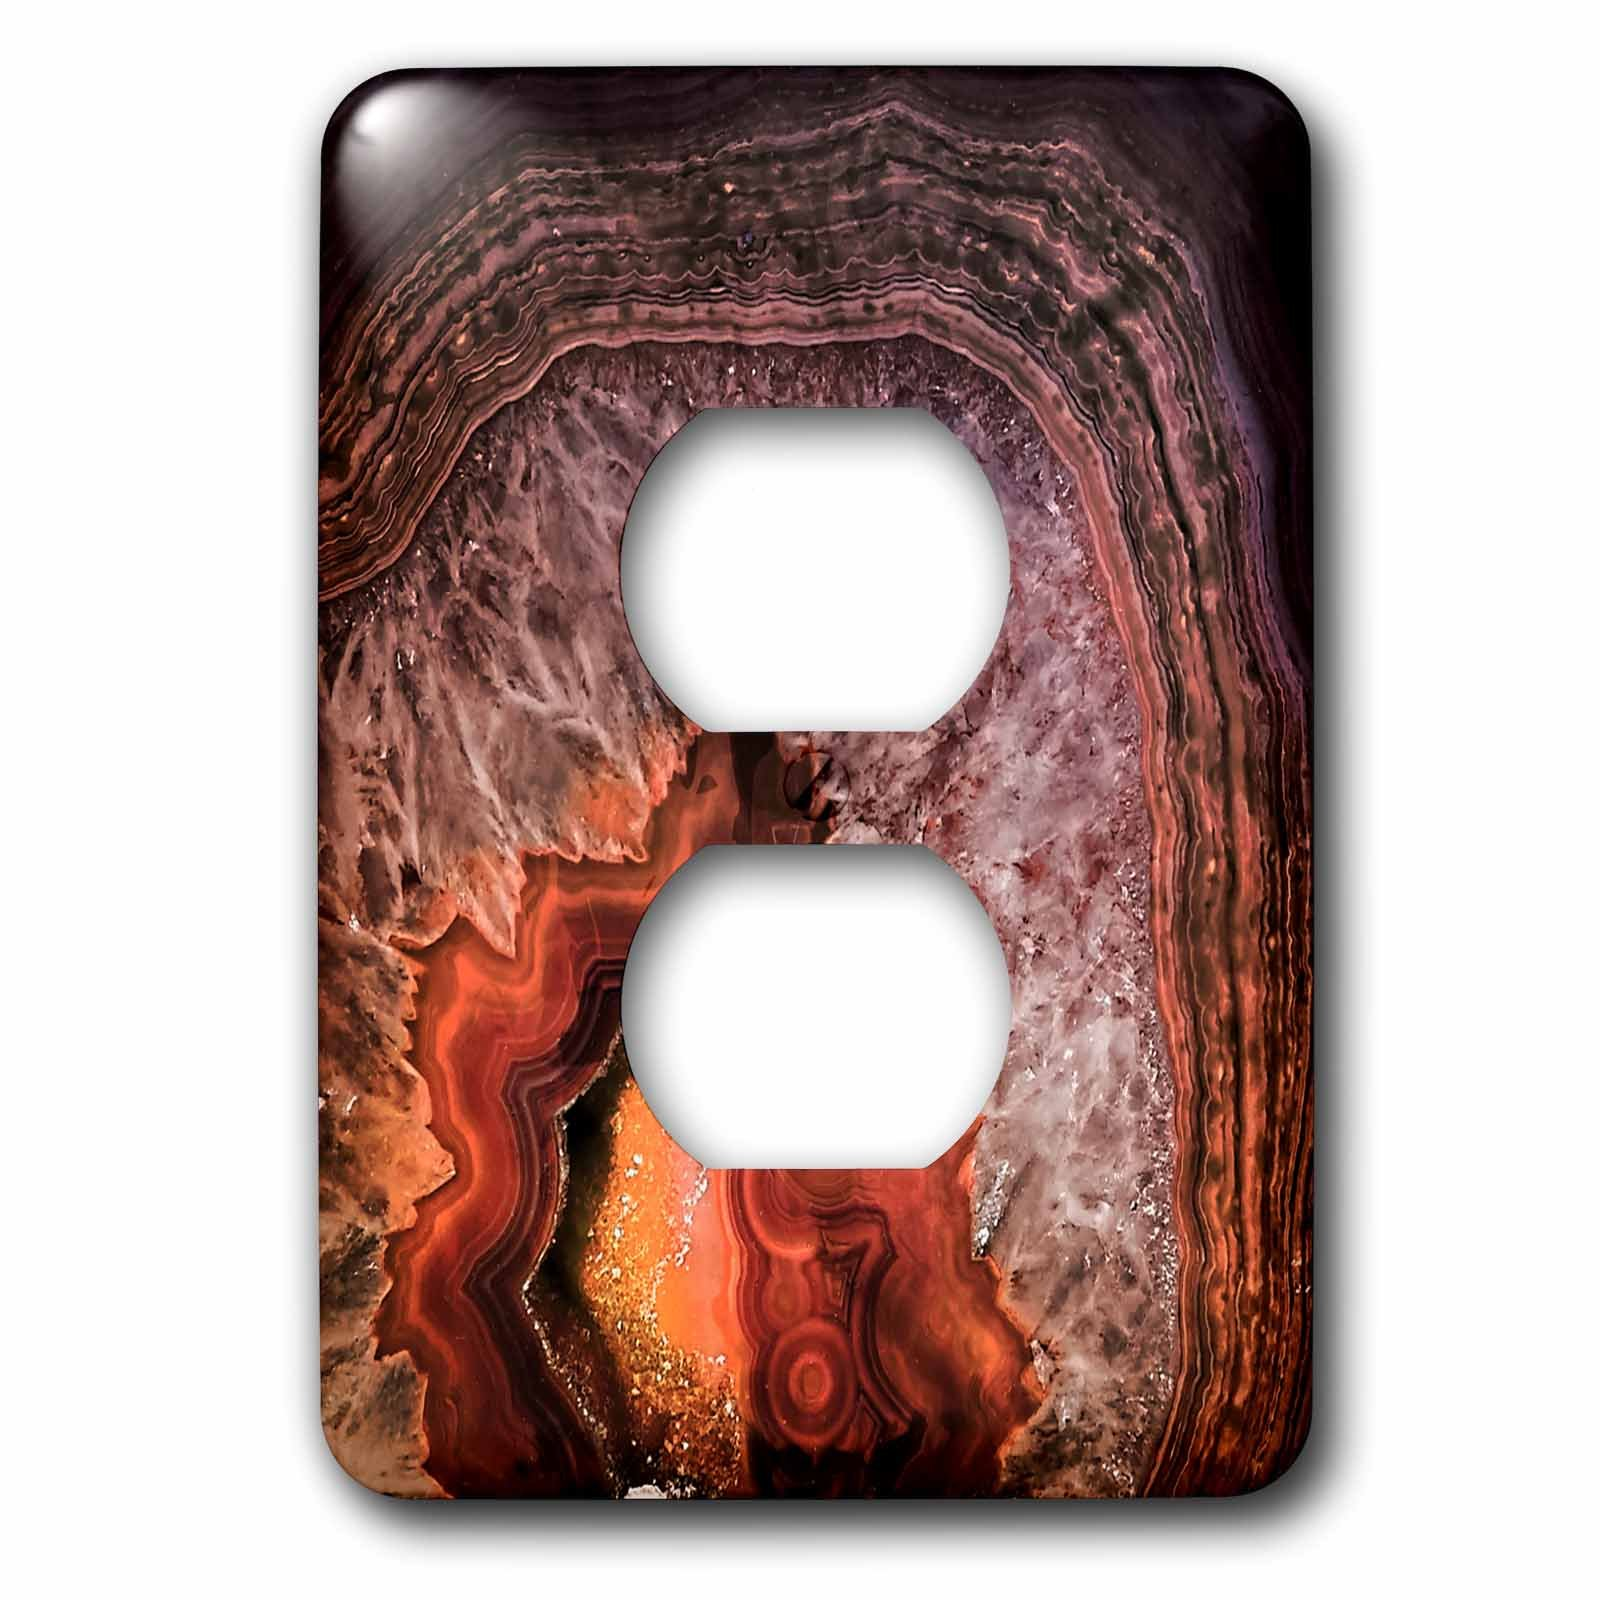 3dRose Uta Naumann Pattern - Image of Luxury Copper Coffee Brown Marble Agate Gem Mineral Stone - Light Switch Covers - 2 plug outlet cover (lsp_274957_6)